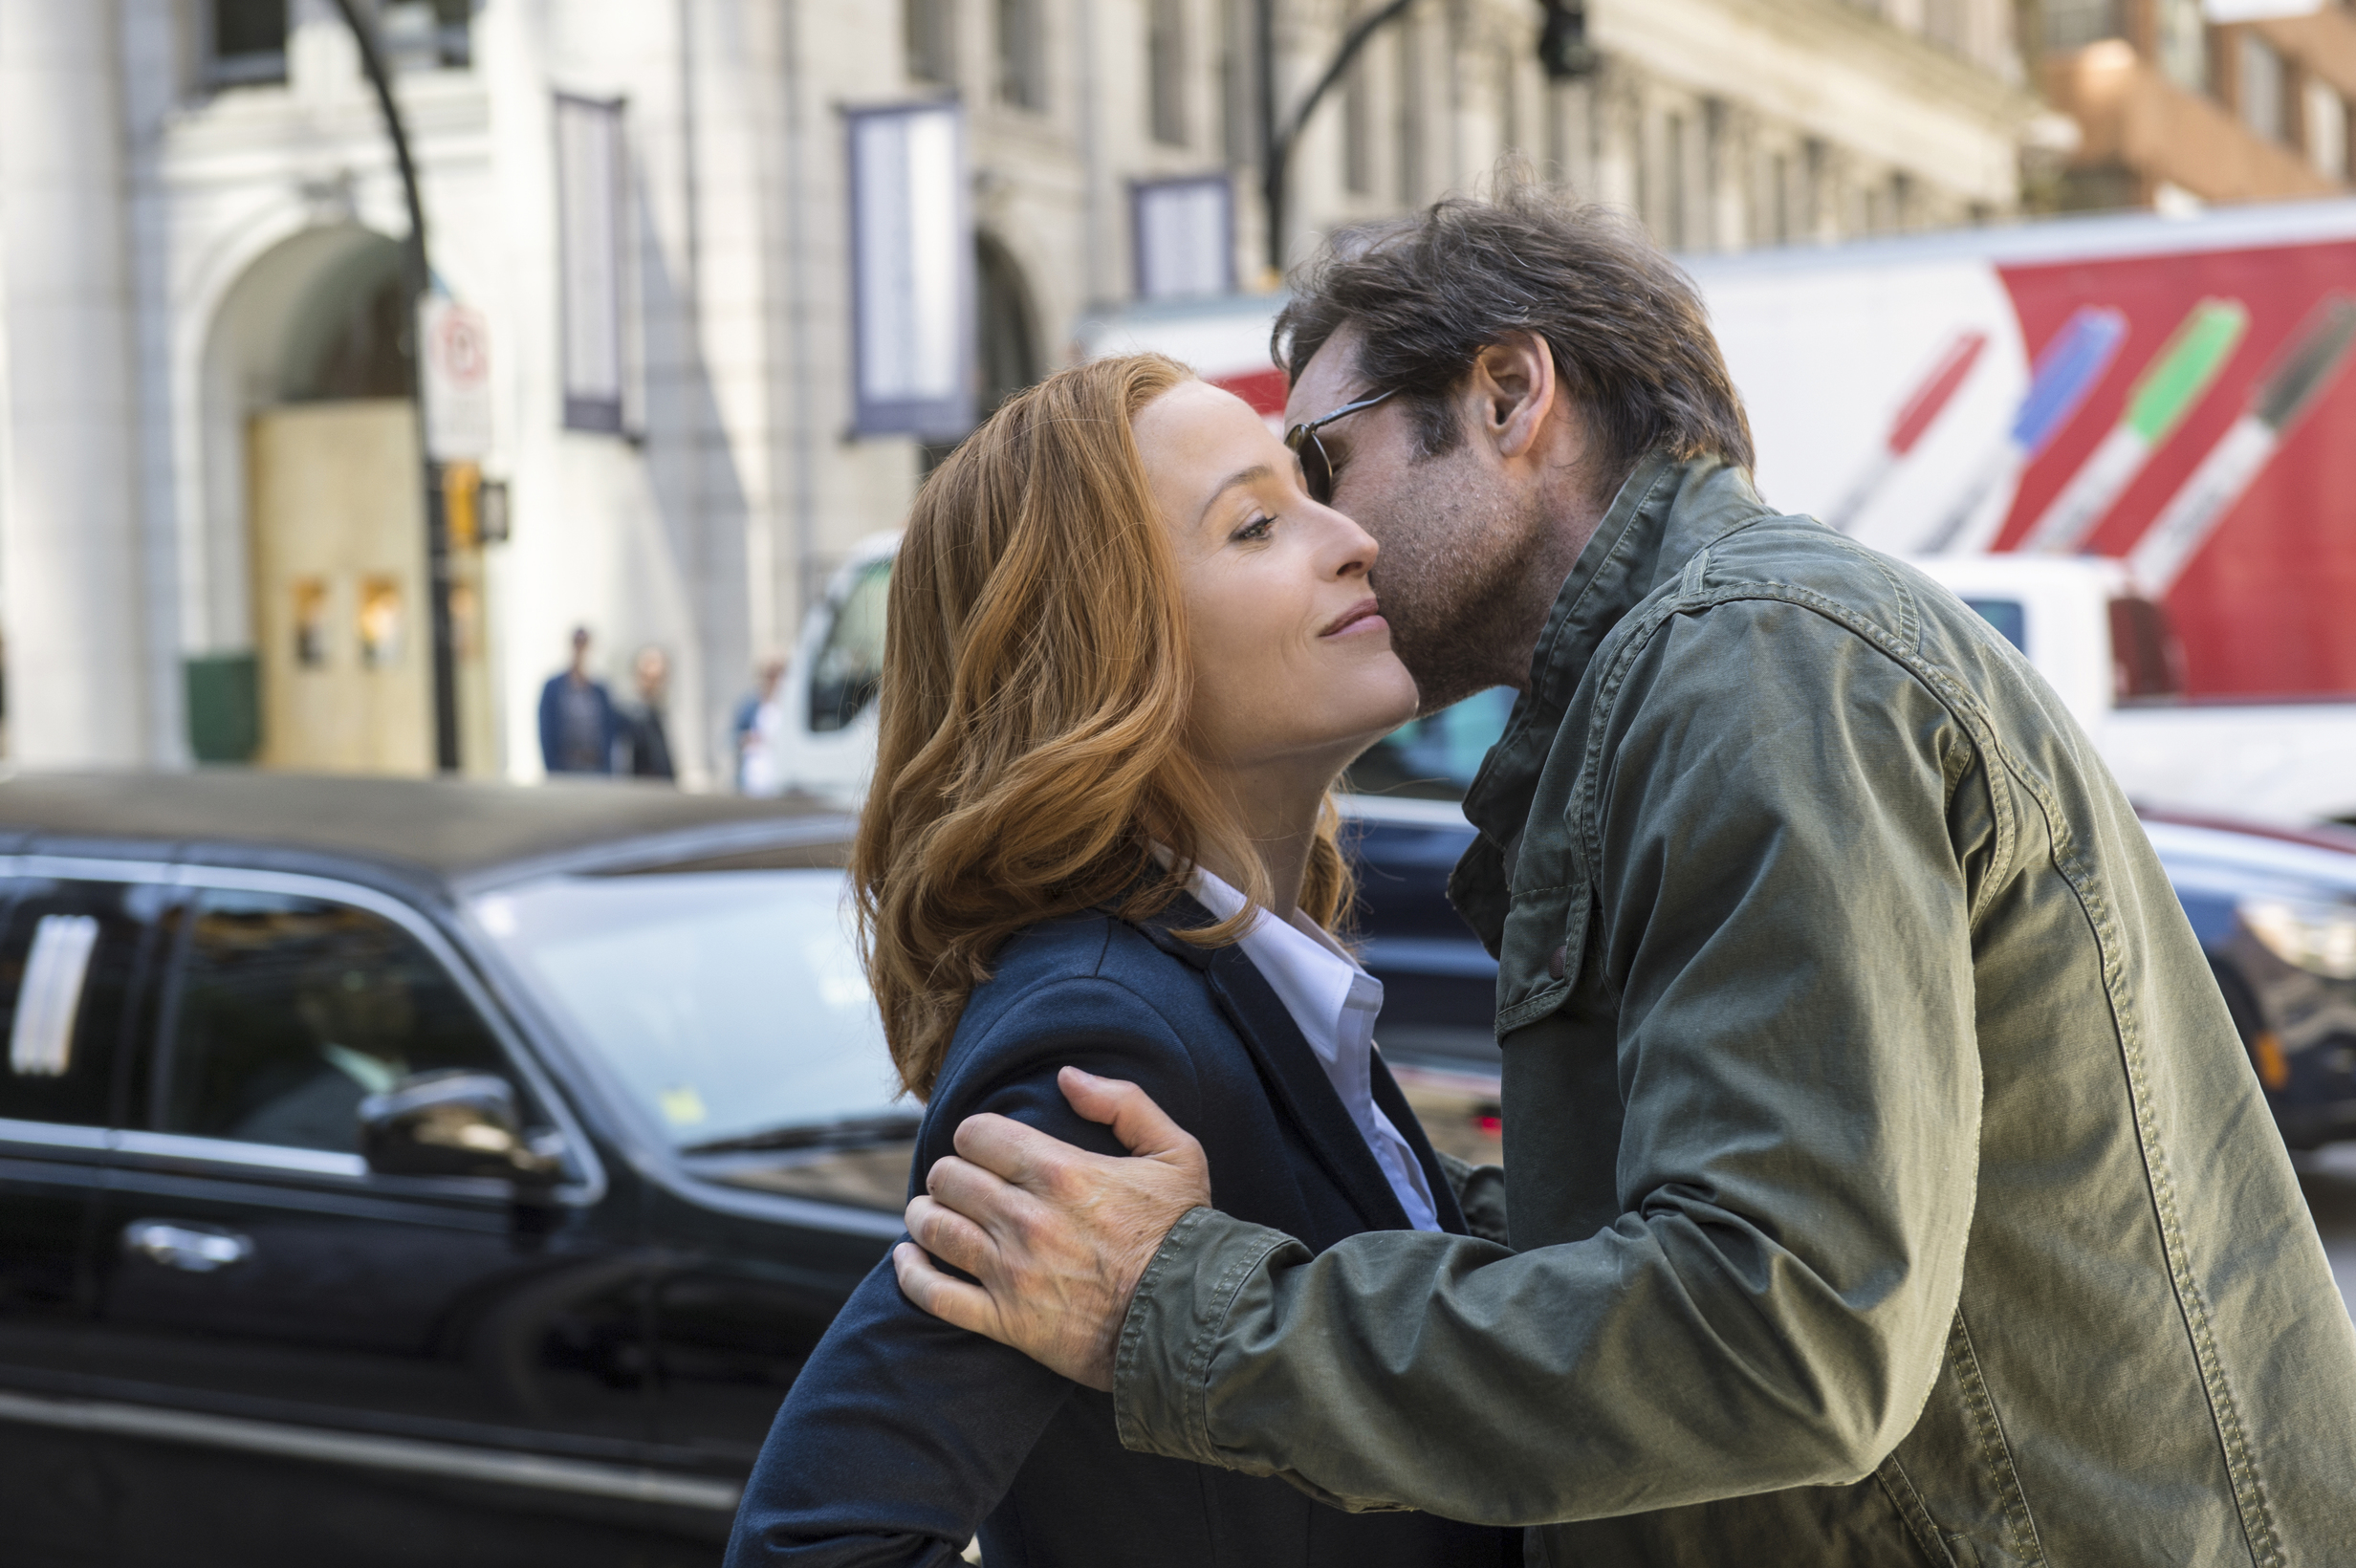 X-files do mulder and scully ever hook up